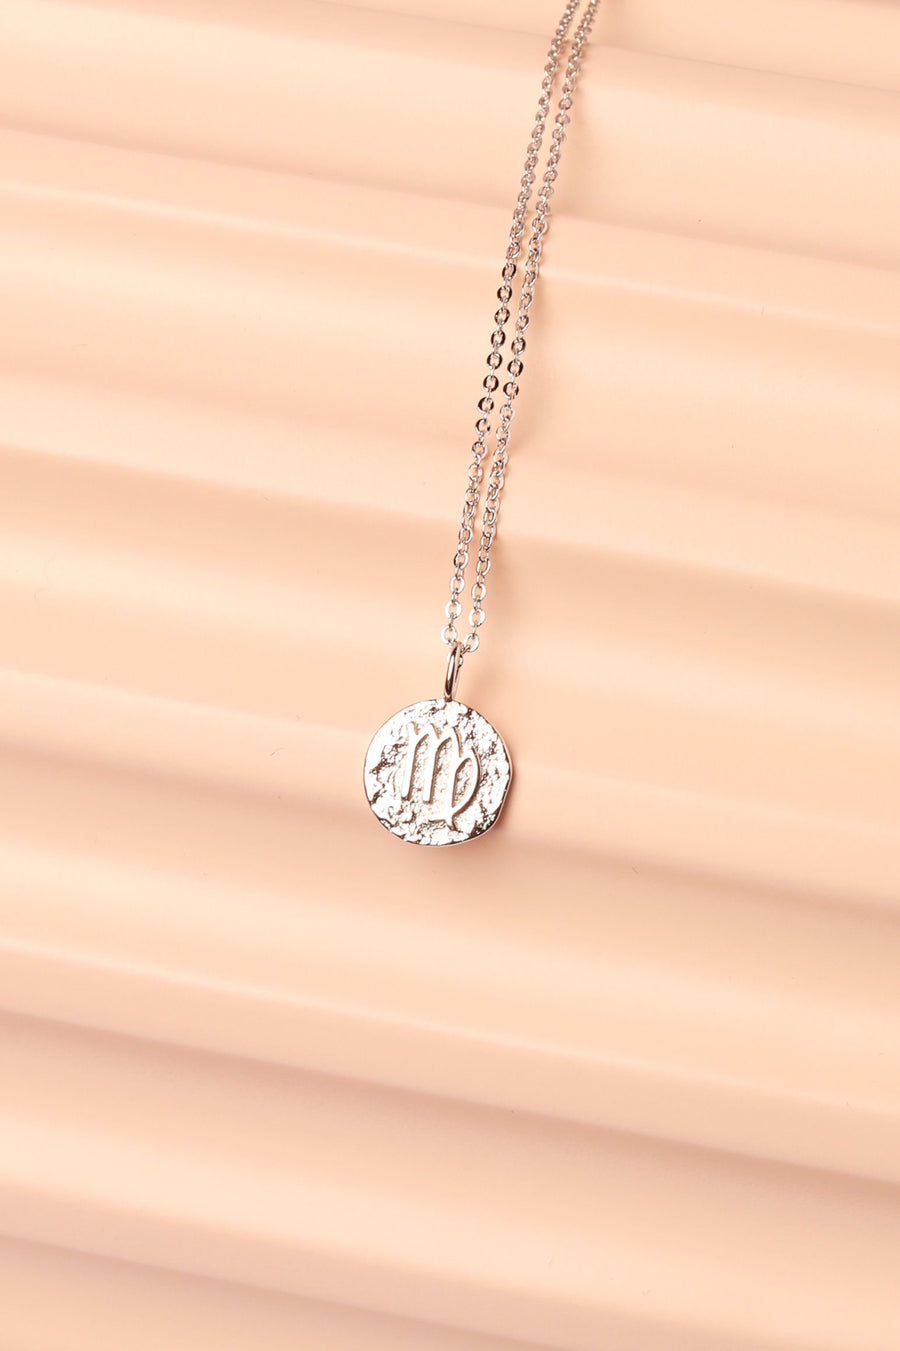 Silver Zodiac Charm Necklace Necklace Mulberry & Grand Virgo